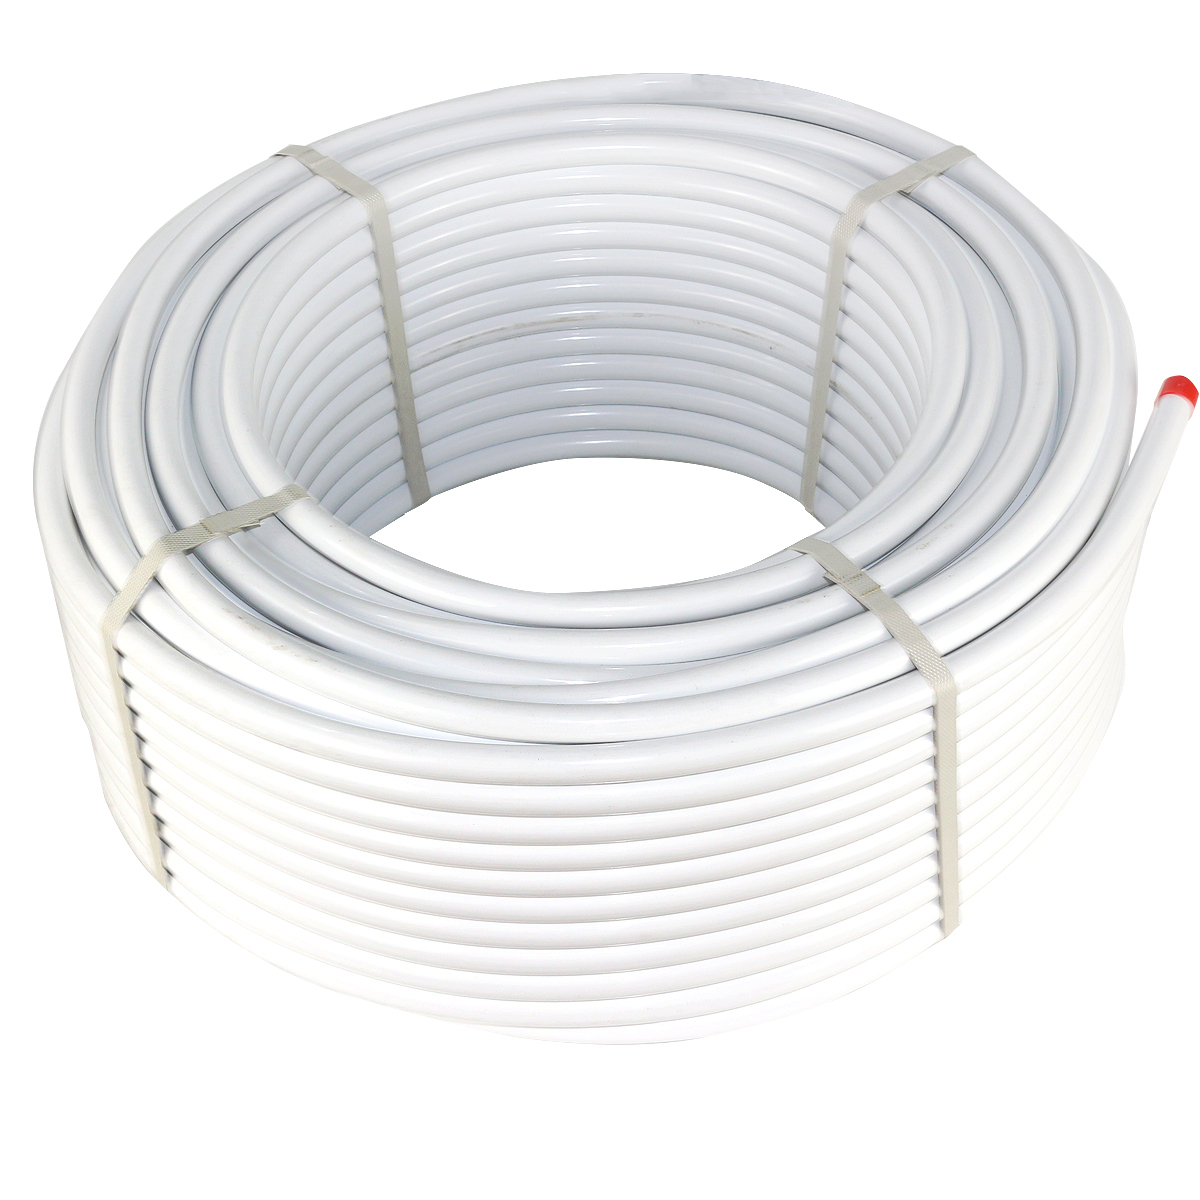 Pex-Al-Pex Multilayer Pipe 16 × 2.0 × 300 m